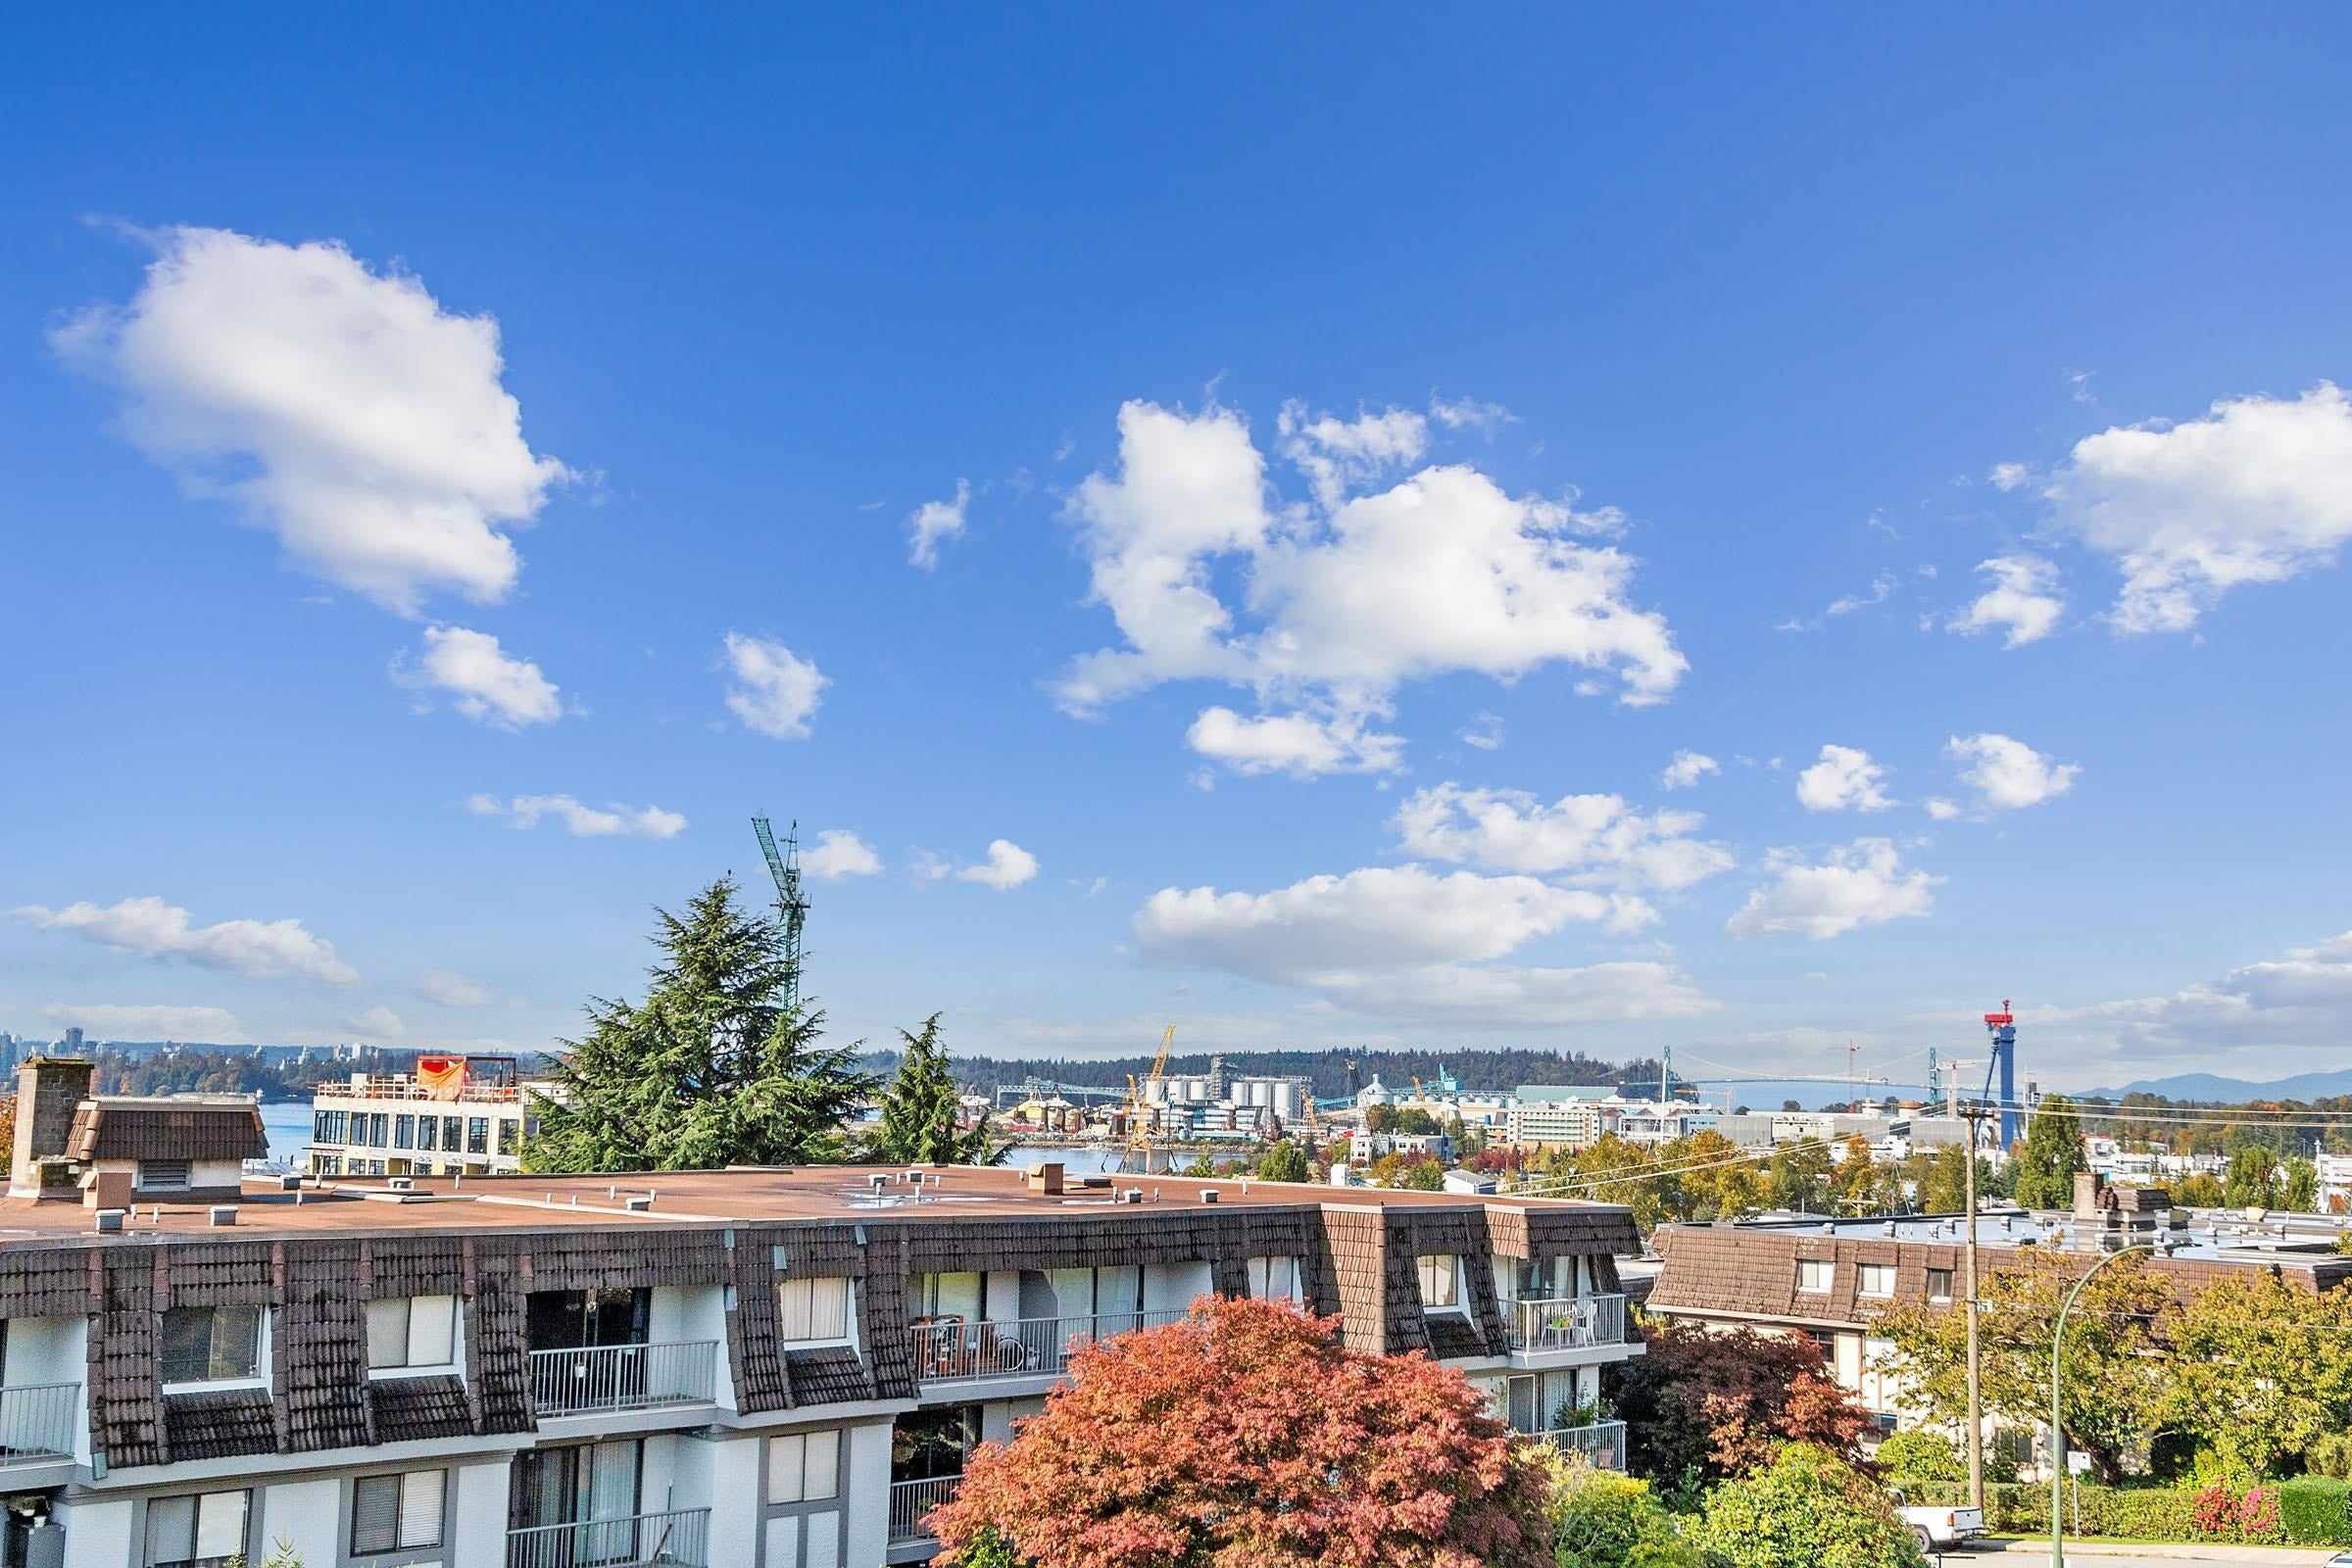 301 264 W 2ND STREET - Lower Lonsdale Apartment/Condo for sale, 2 Bedrooms (R2625527) - #18